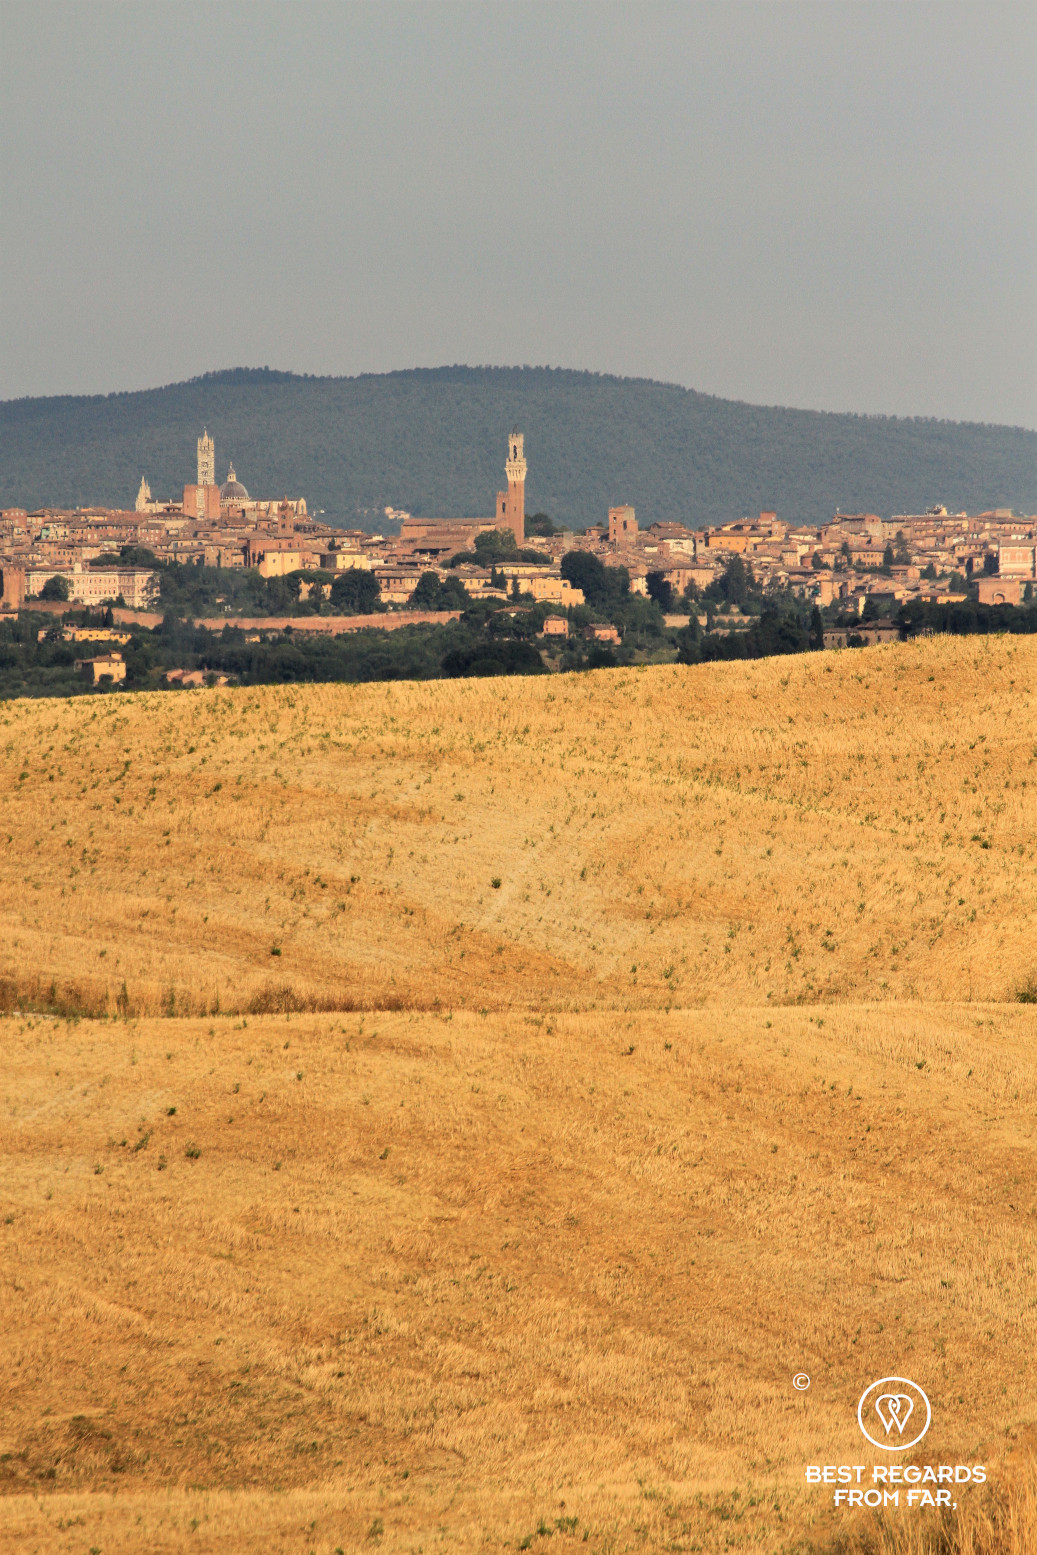 Wheat fields with the city of Siena in the background